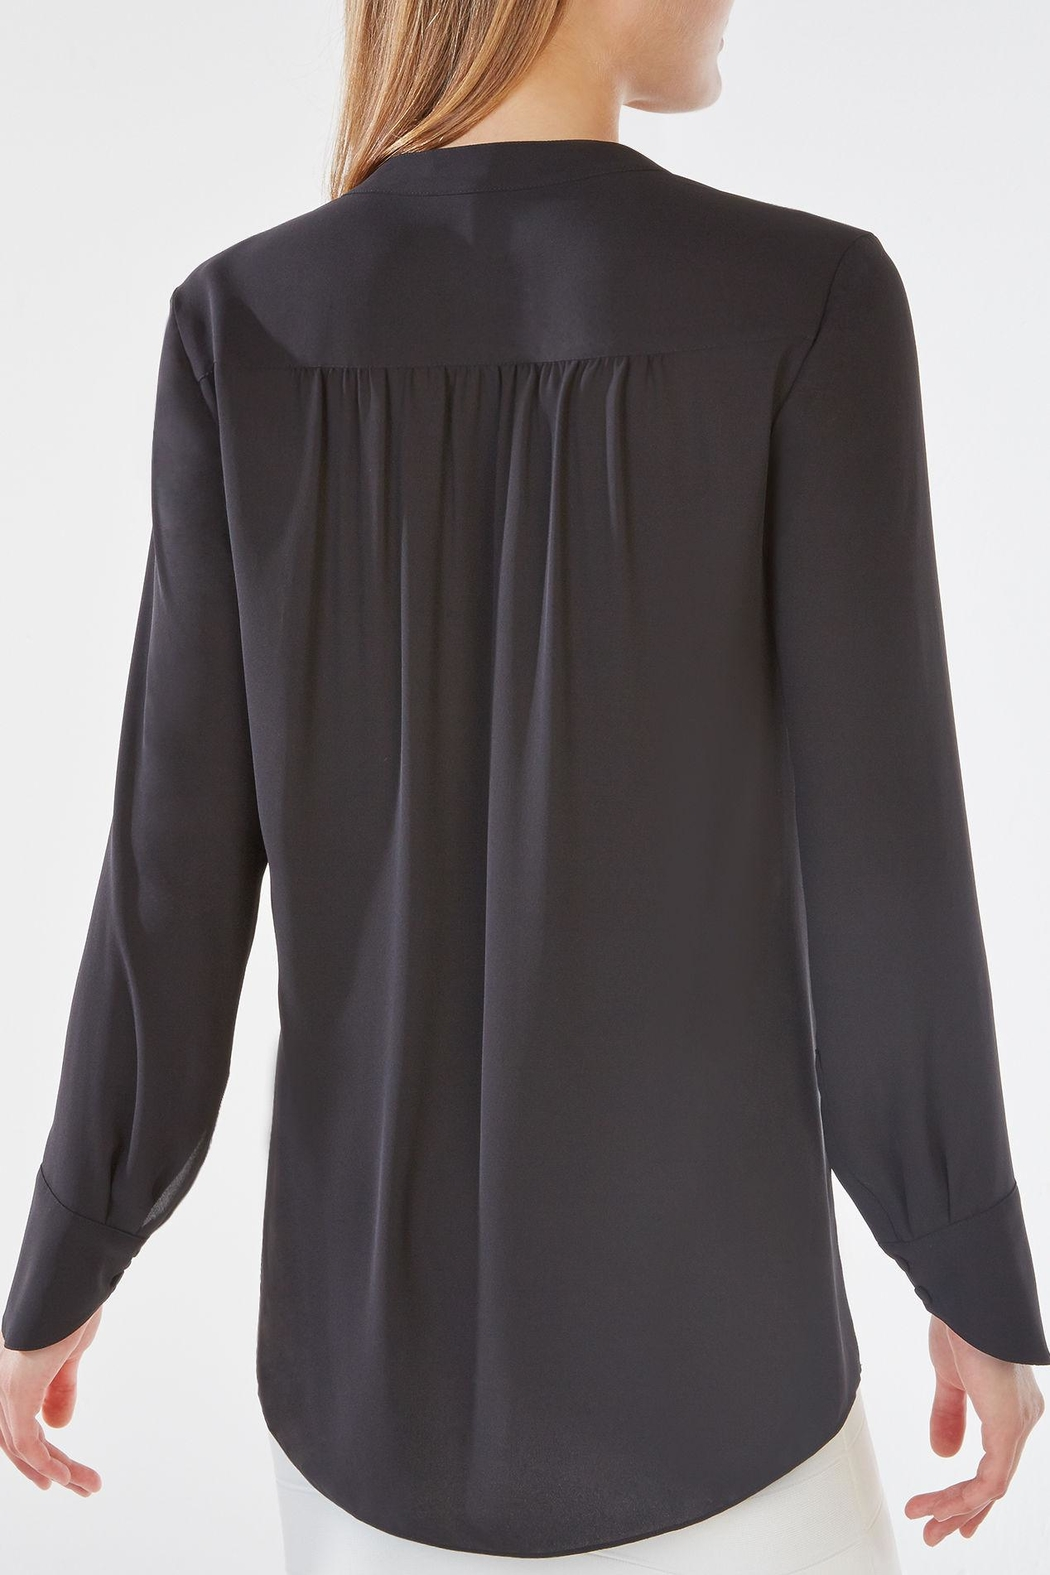 BCBG Max Azria Jaklyn Top - Front Full Image